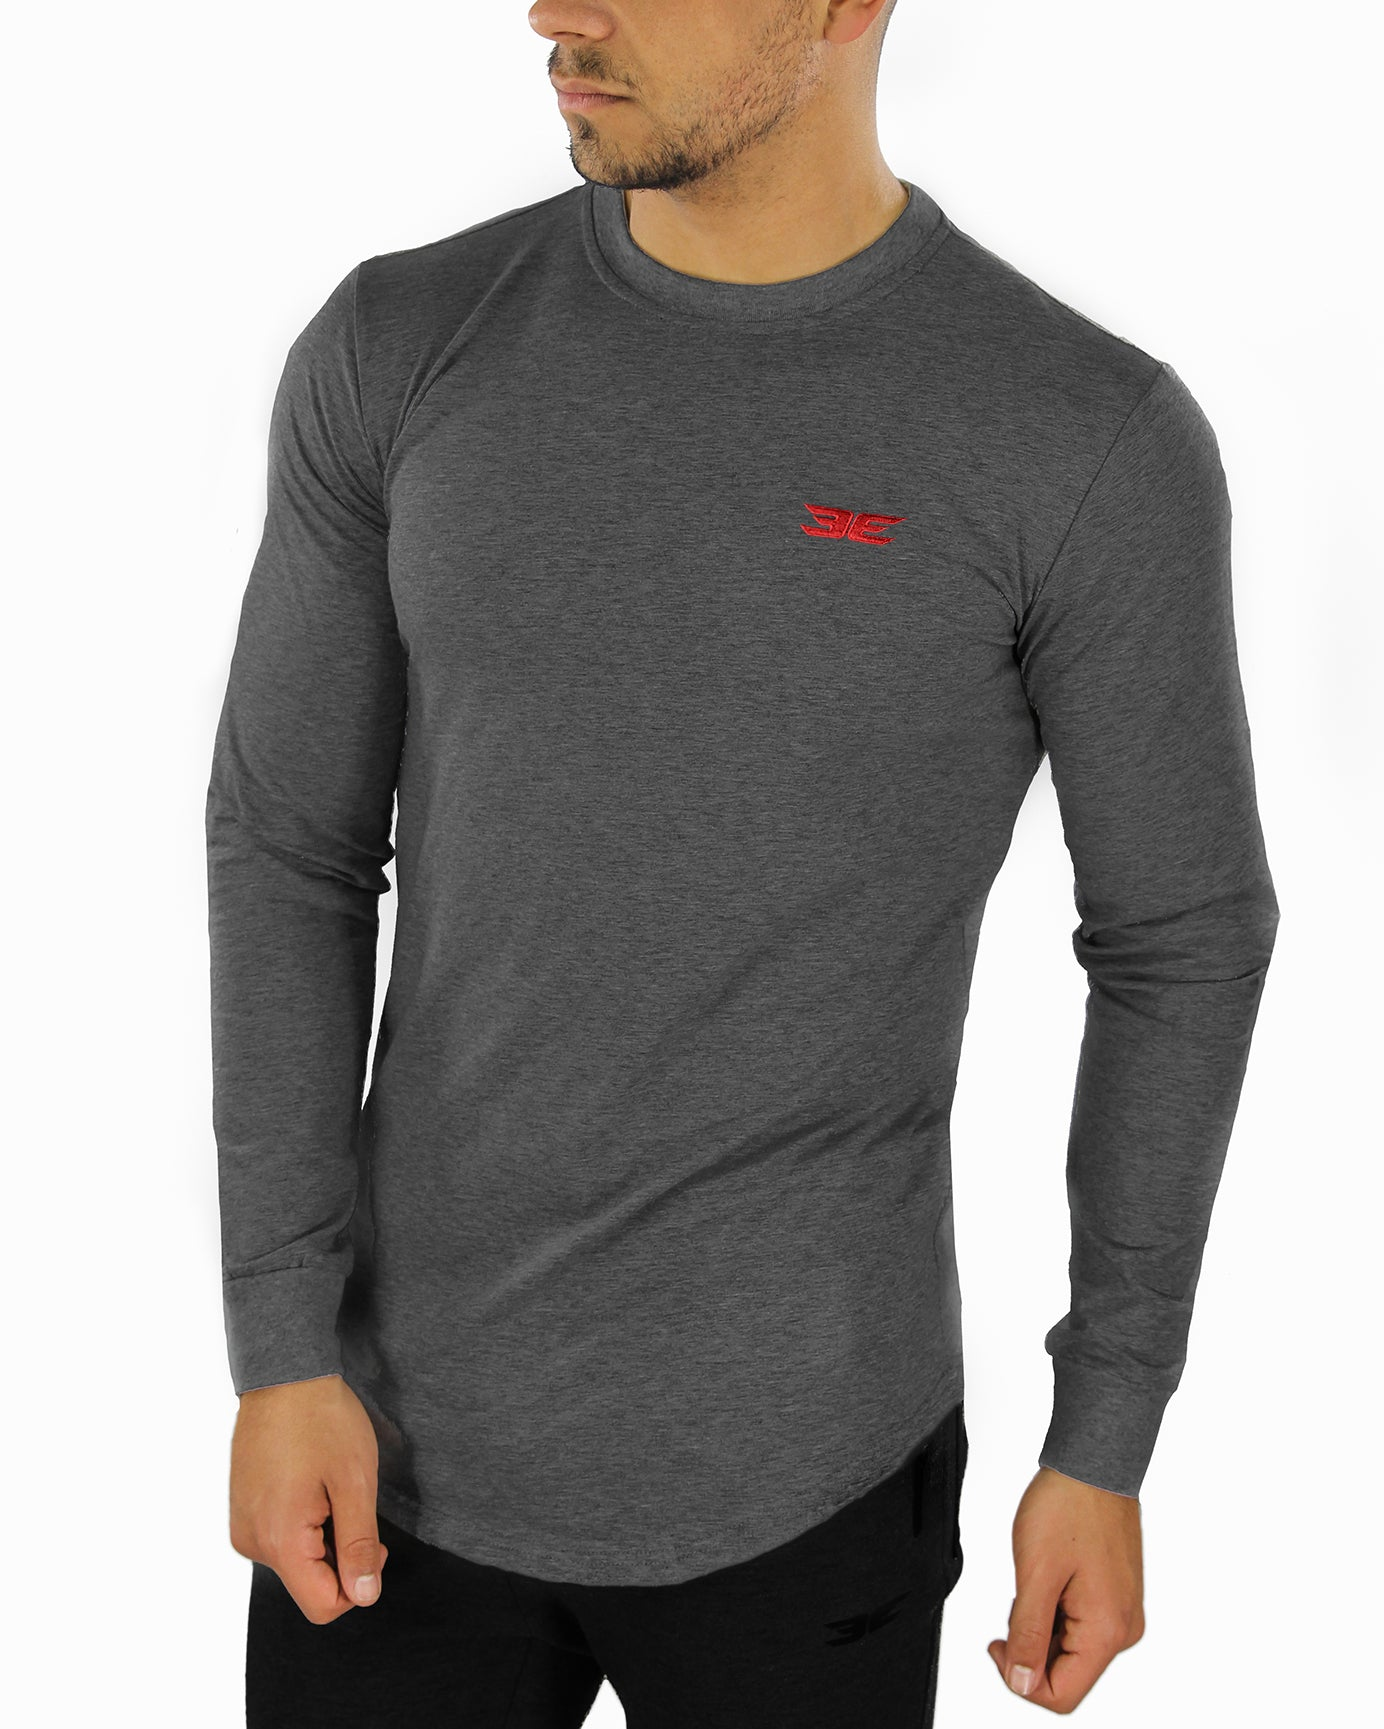 Long Sleeve Scoop - Charcoal